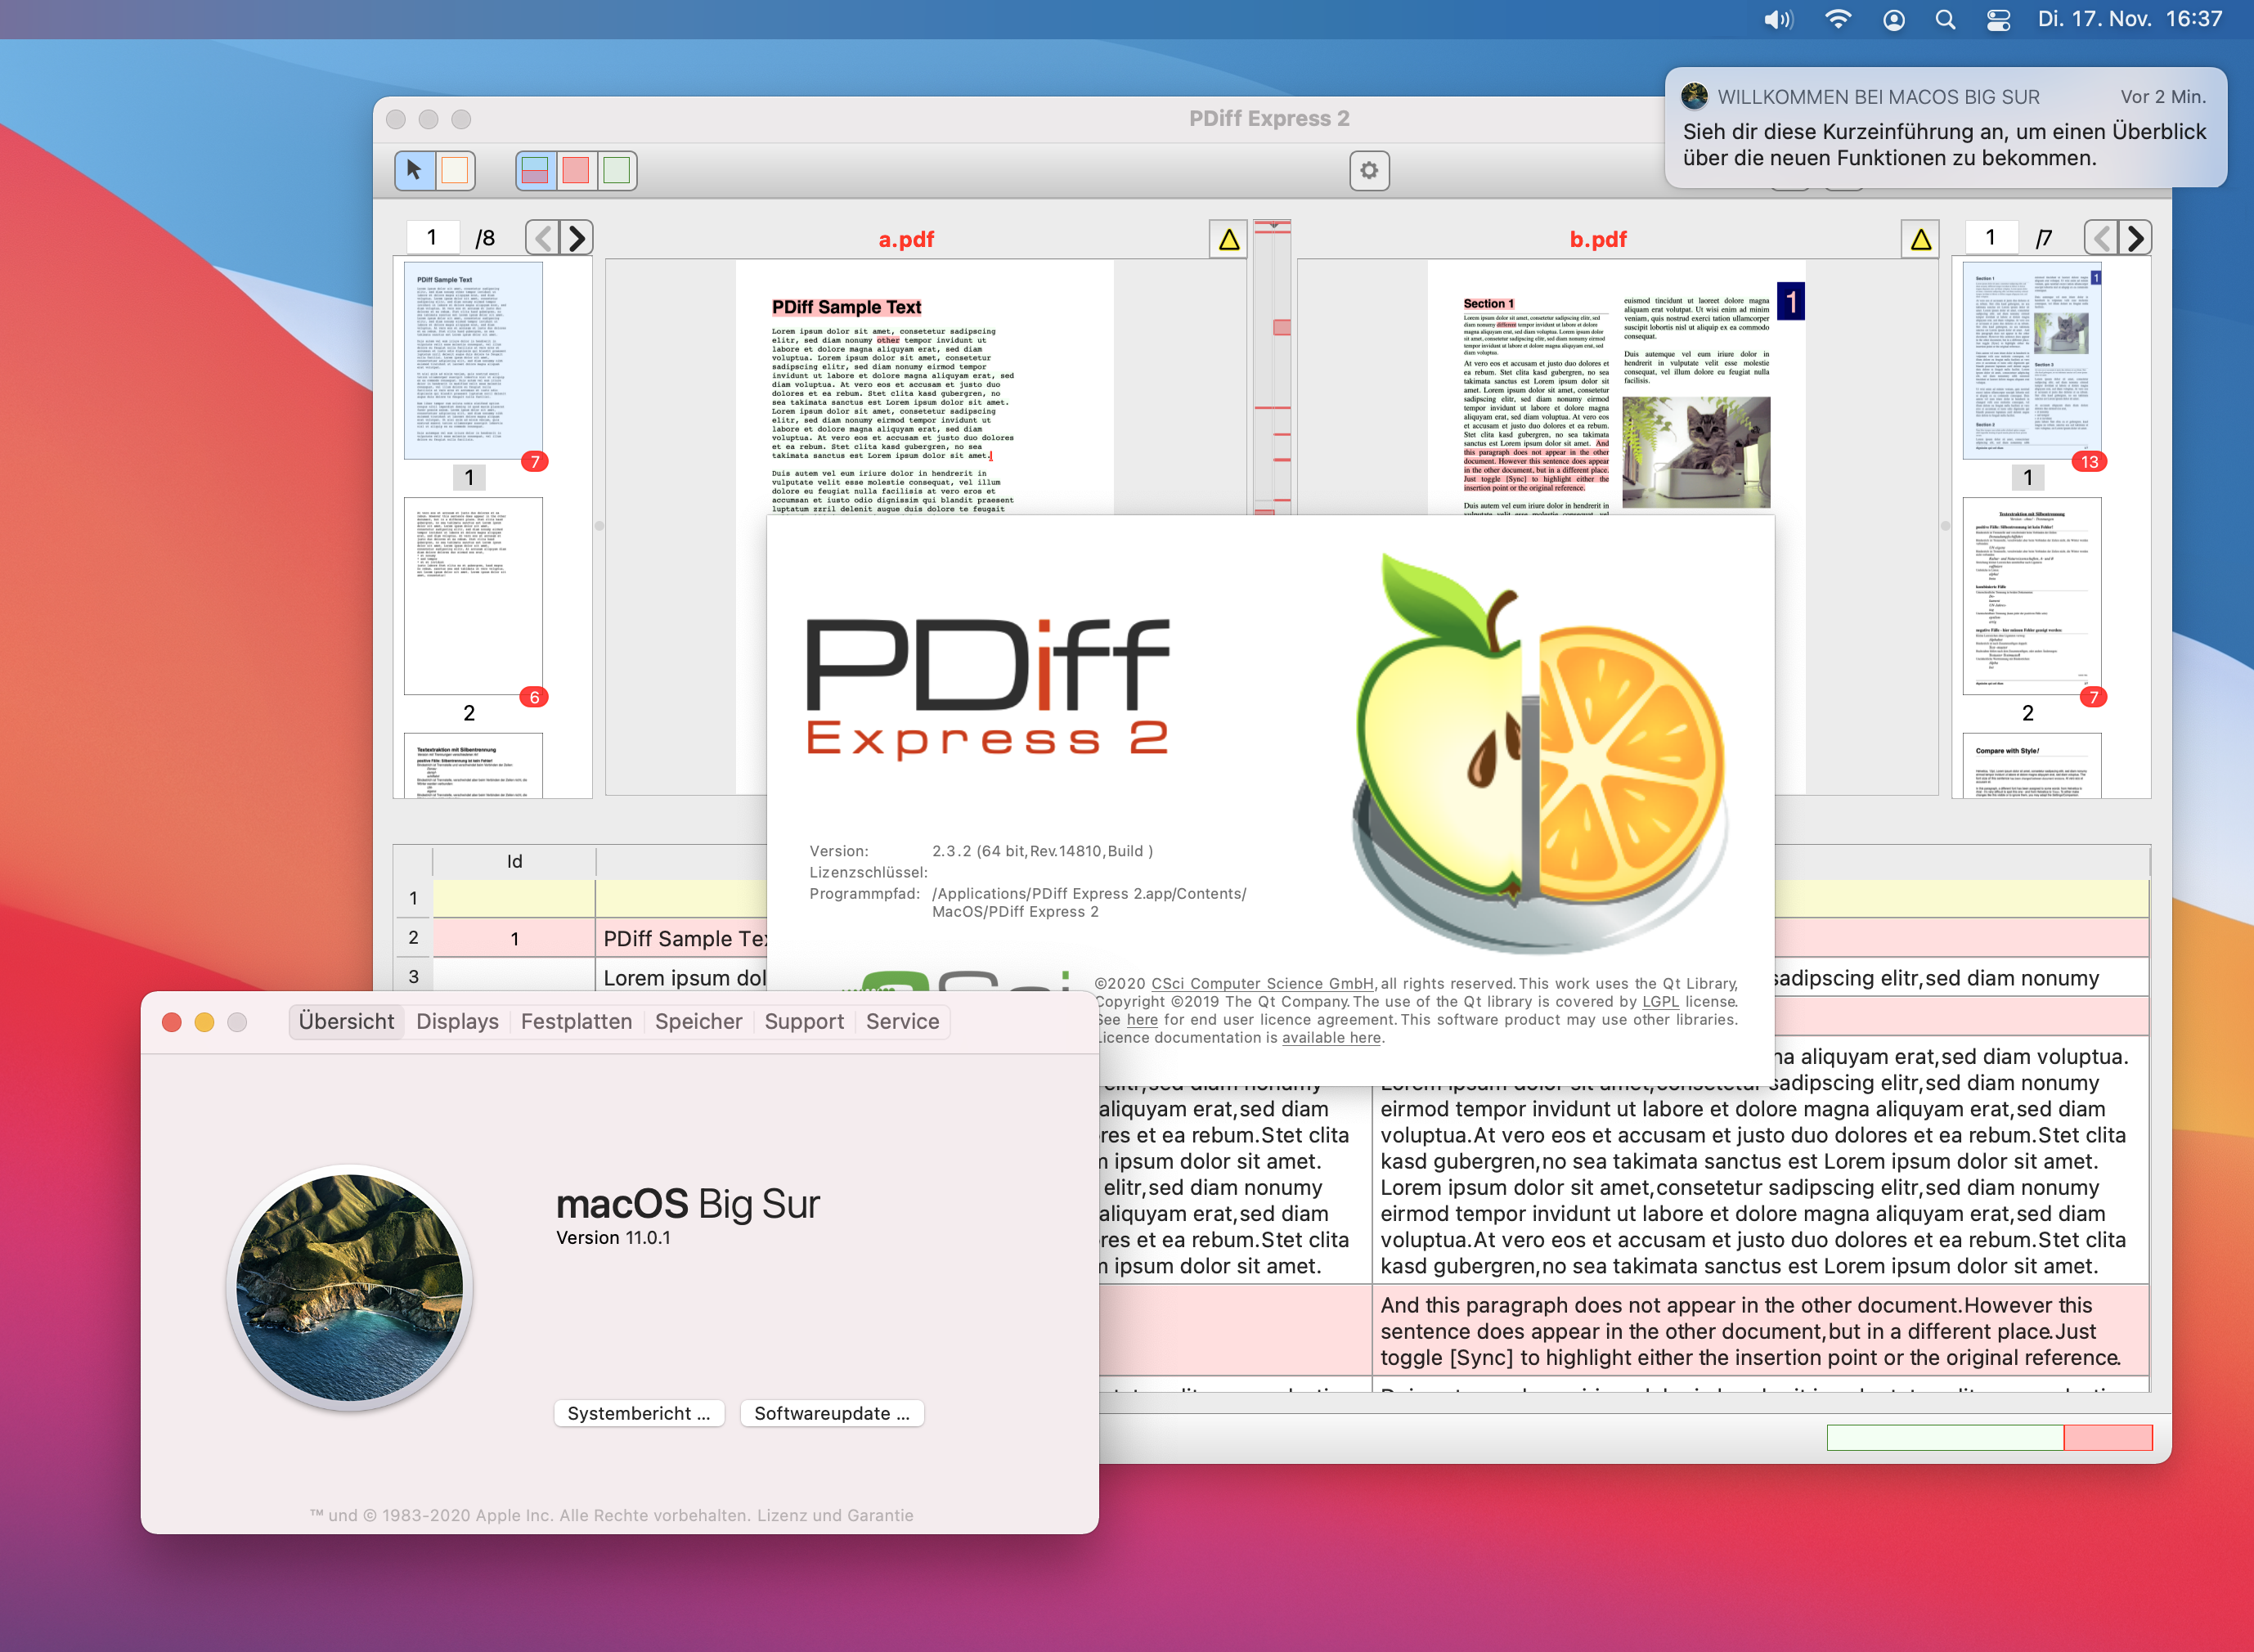 Compare PDF with PDiff Express under macOS 11 Big Sur